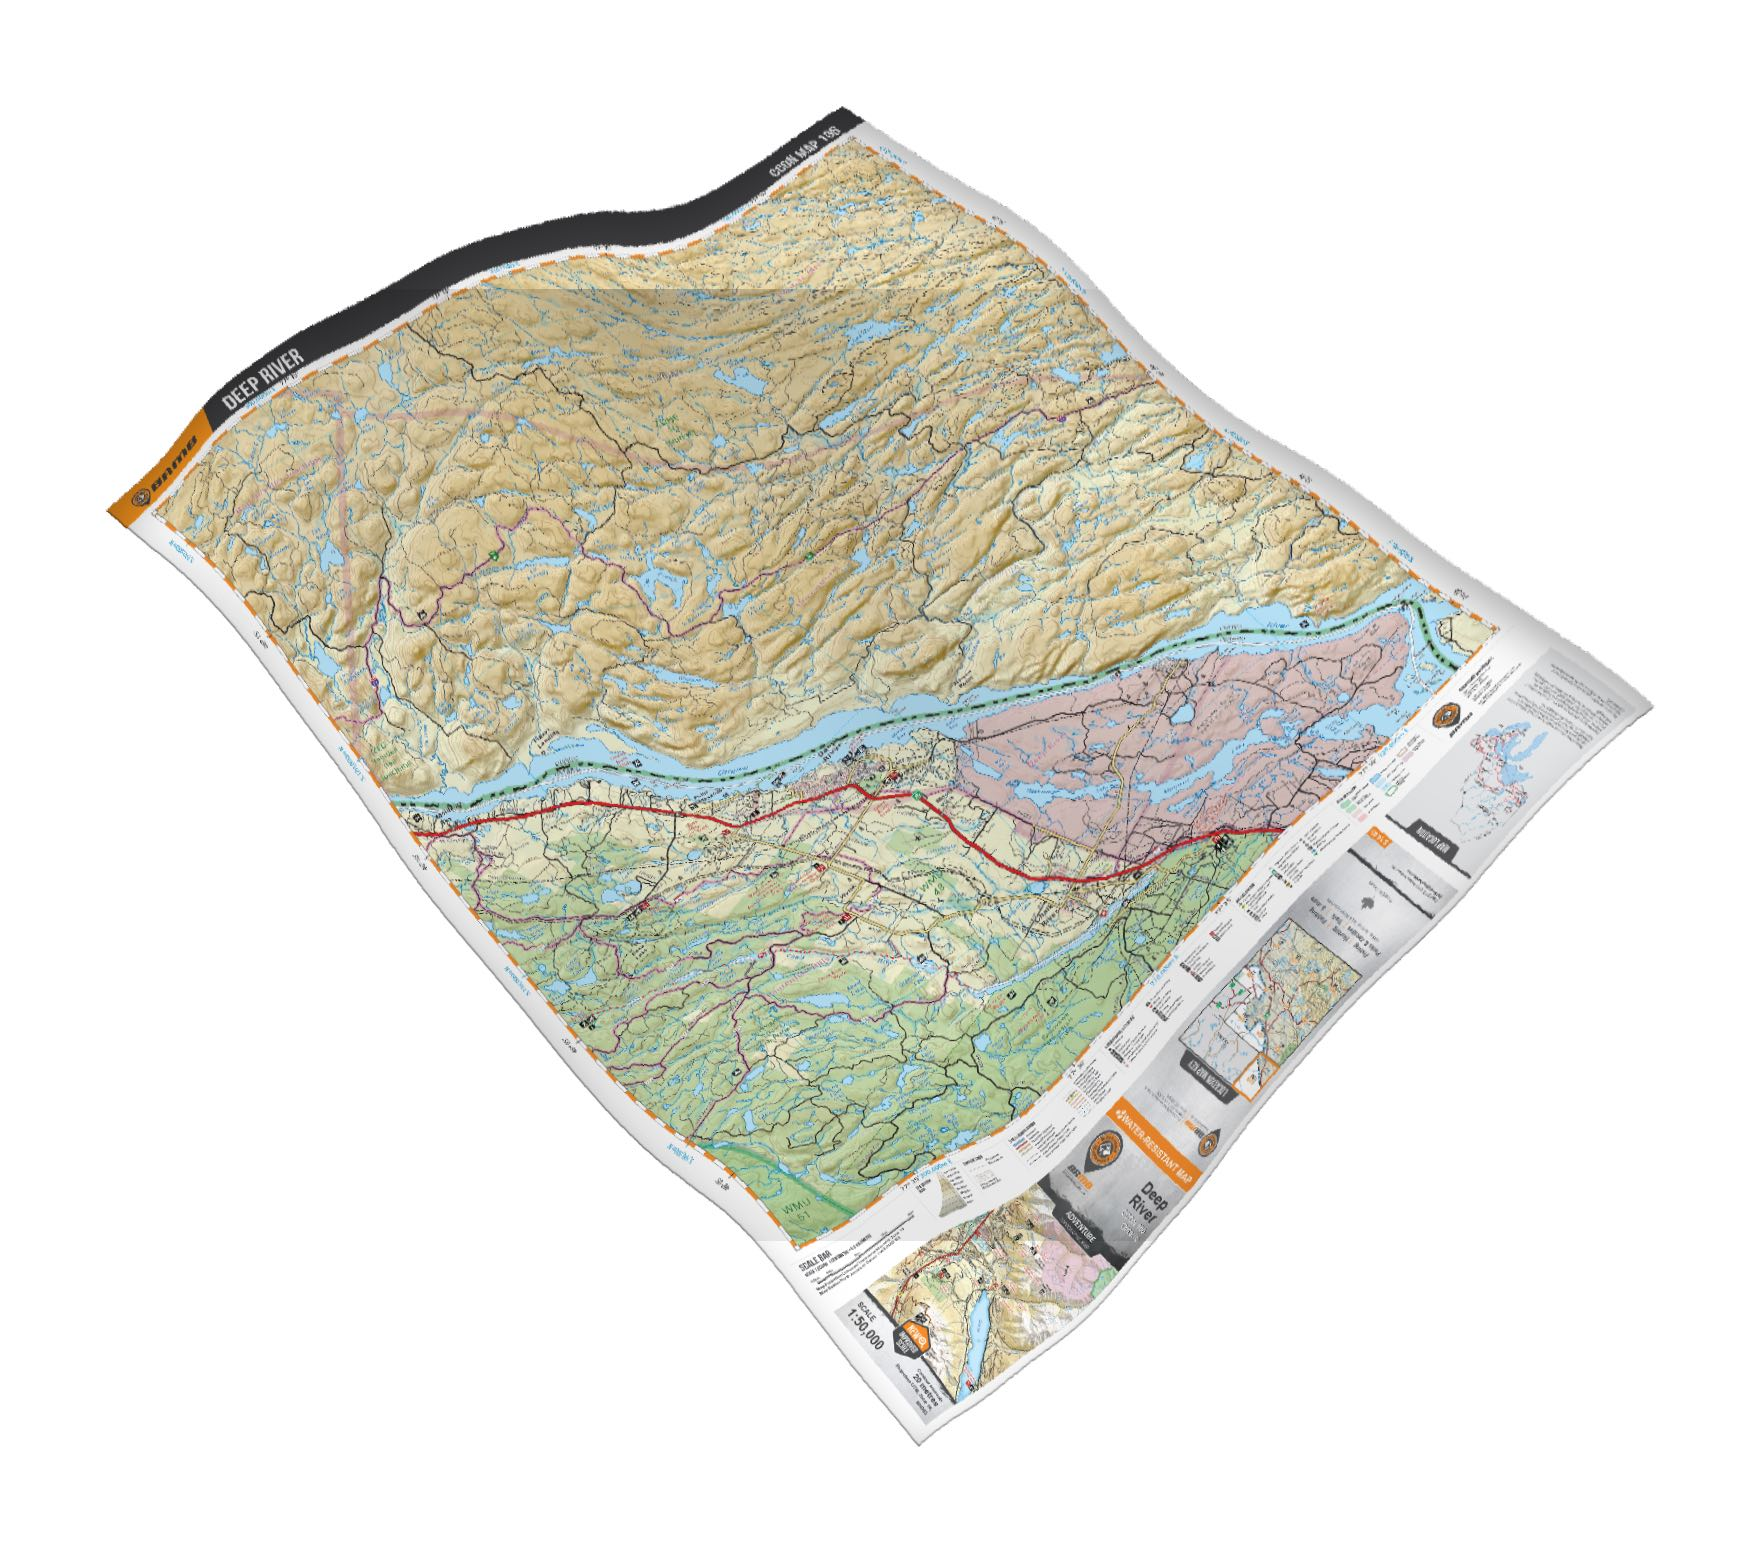 Brmb blog zoom in to your hunting hot spot with brmb topo maps in our backroad mapbooks our topo maps come on durable water resistant paper and can be folded up to fit in your front pocket so you can take them fandeluxe Images